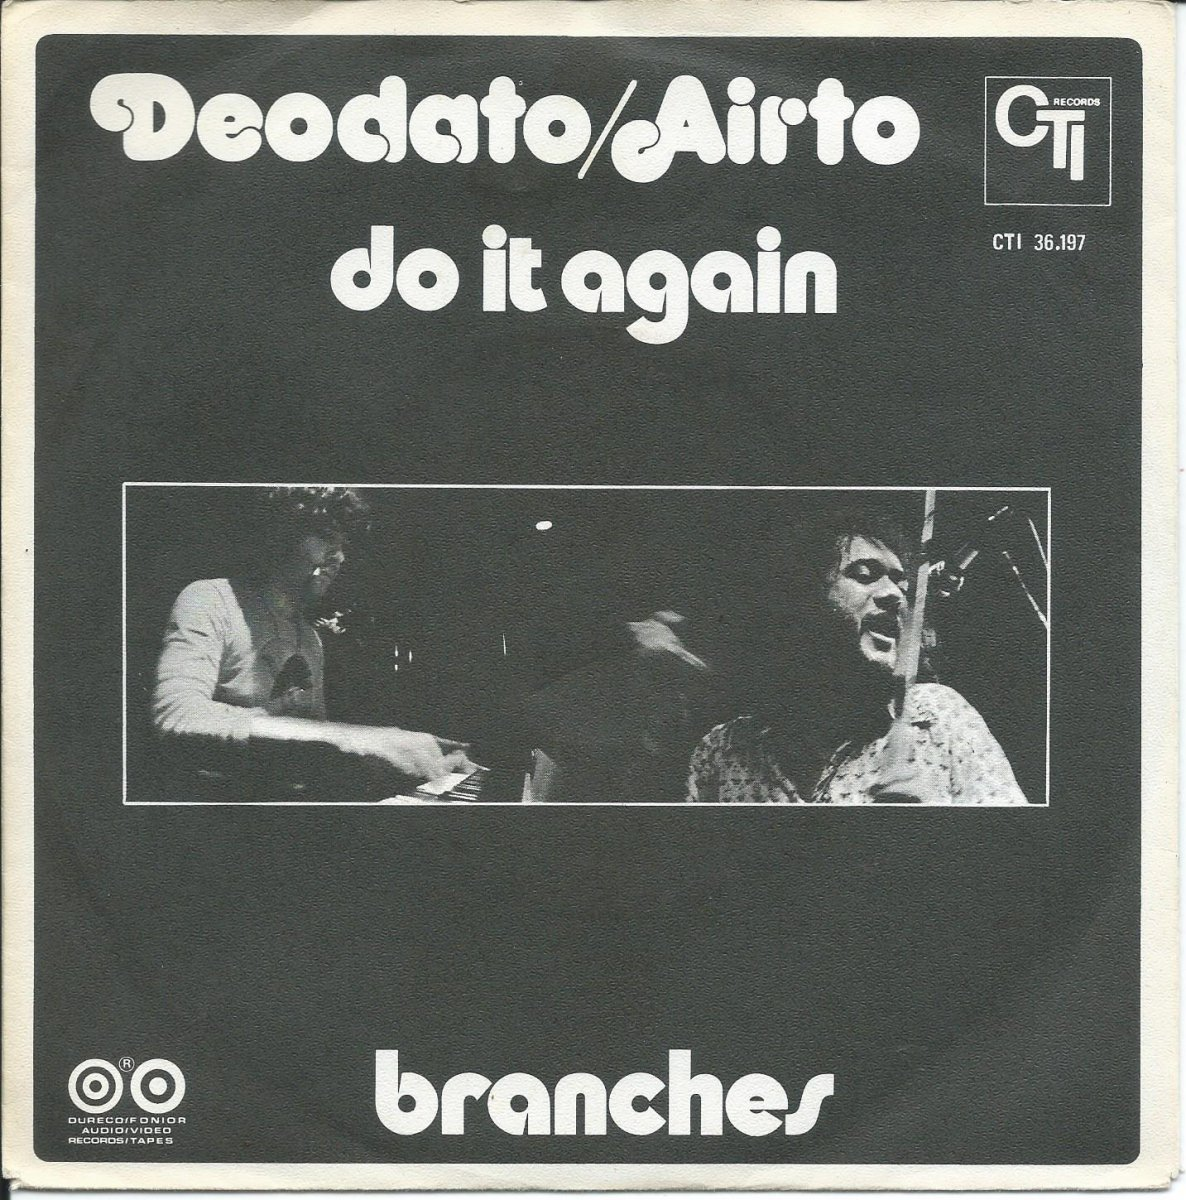 DEODATO / AIRTO / DO IT AGAIN / BRANCHES (O GALHO DA ROSEIRA) (7